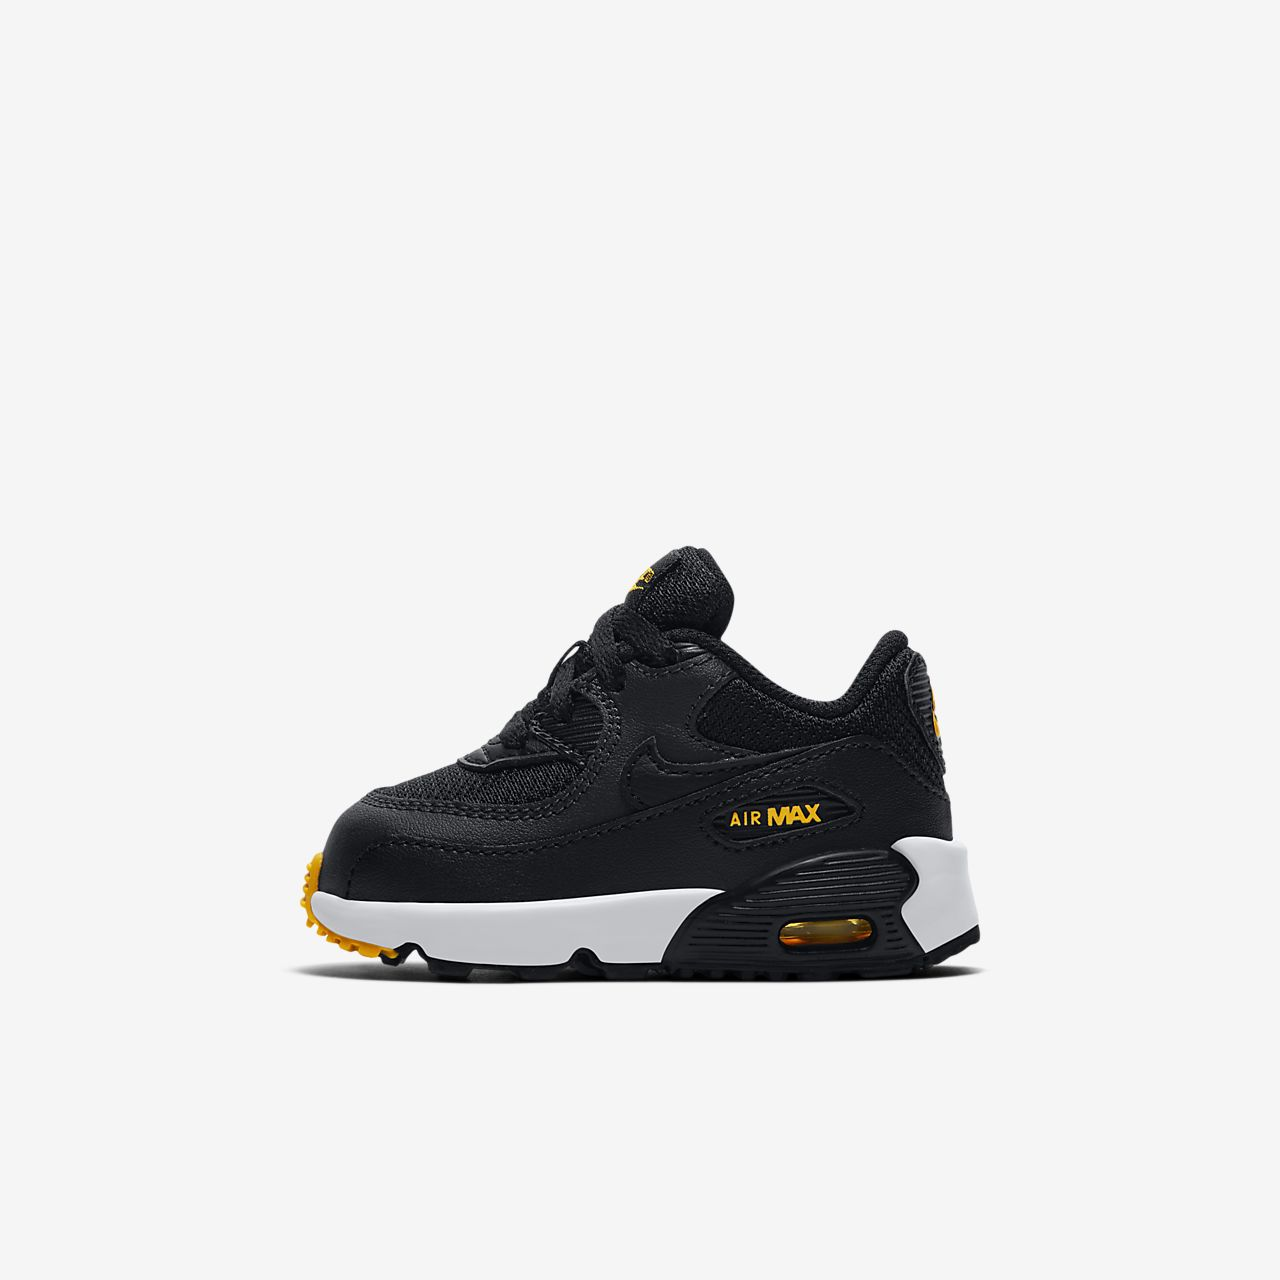 Nike Air Max 90 Mesh Sabatilles (17-27) - Nadó i infant